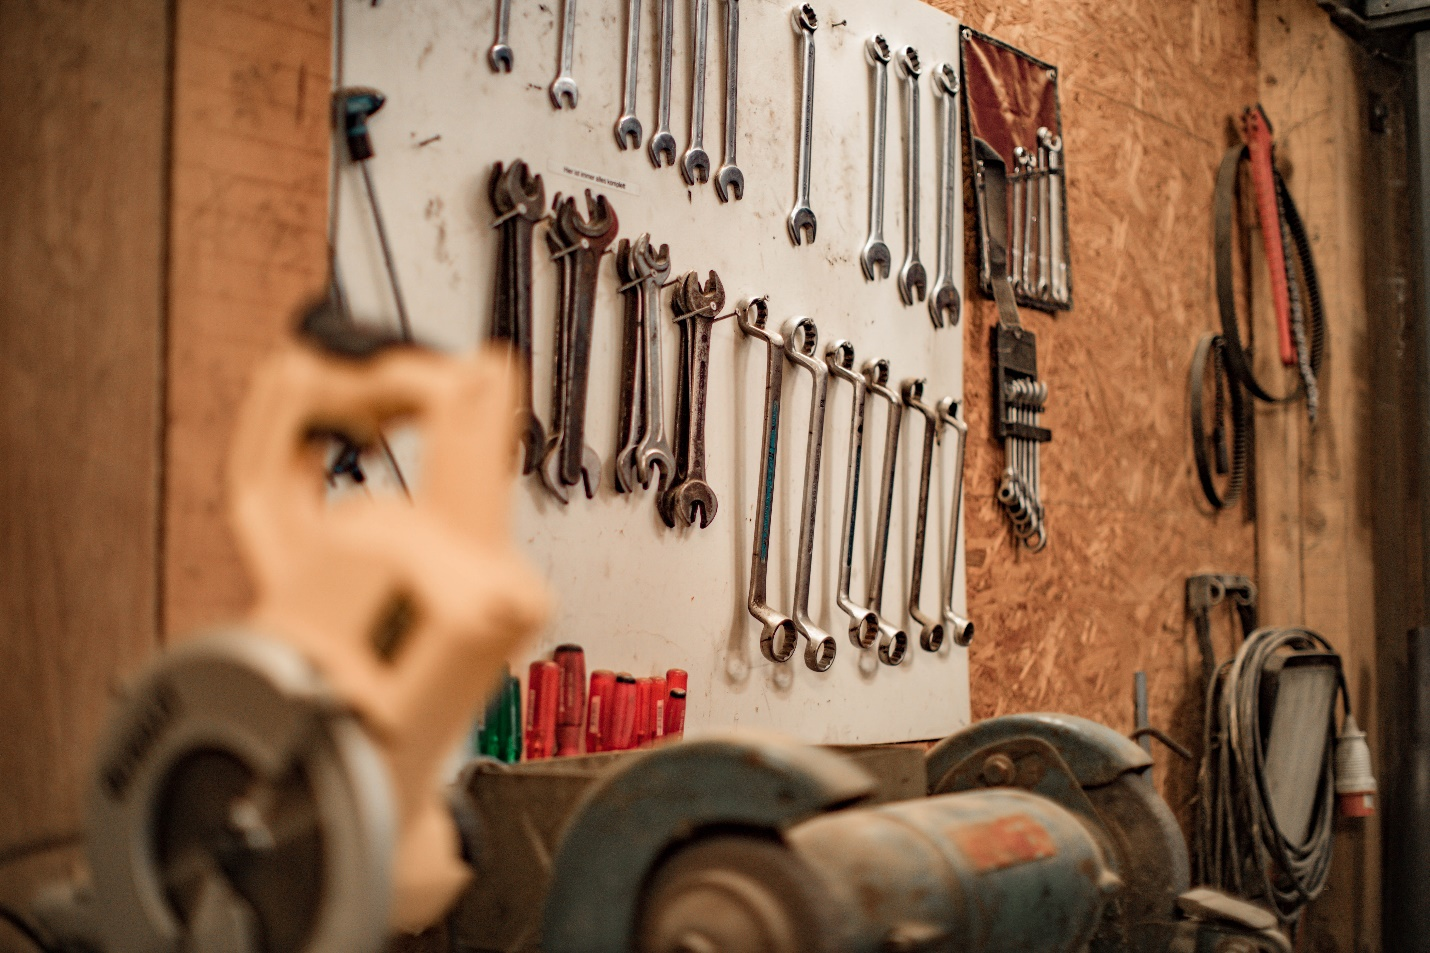 Professional hand tools hanging on the wall